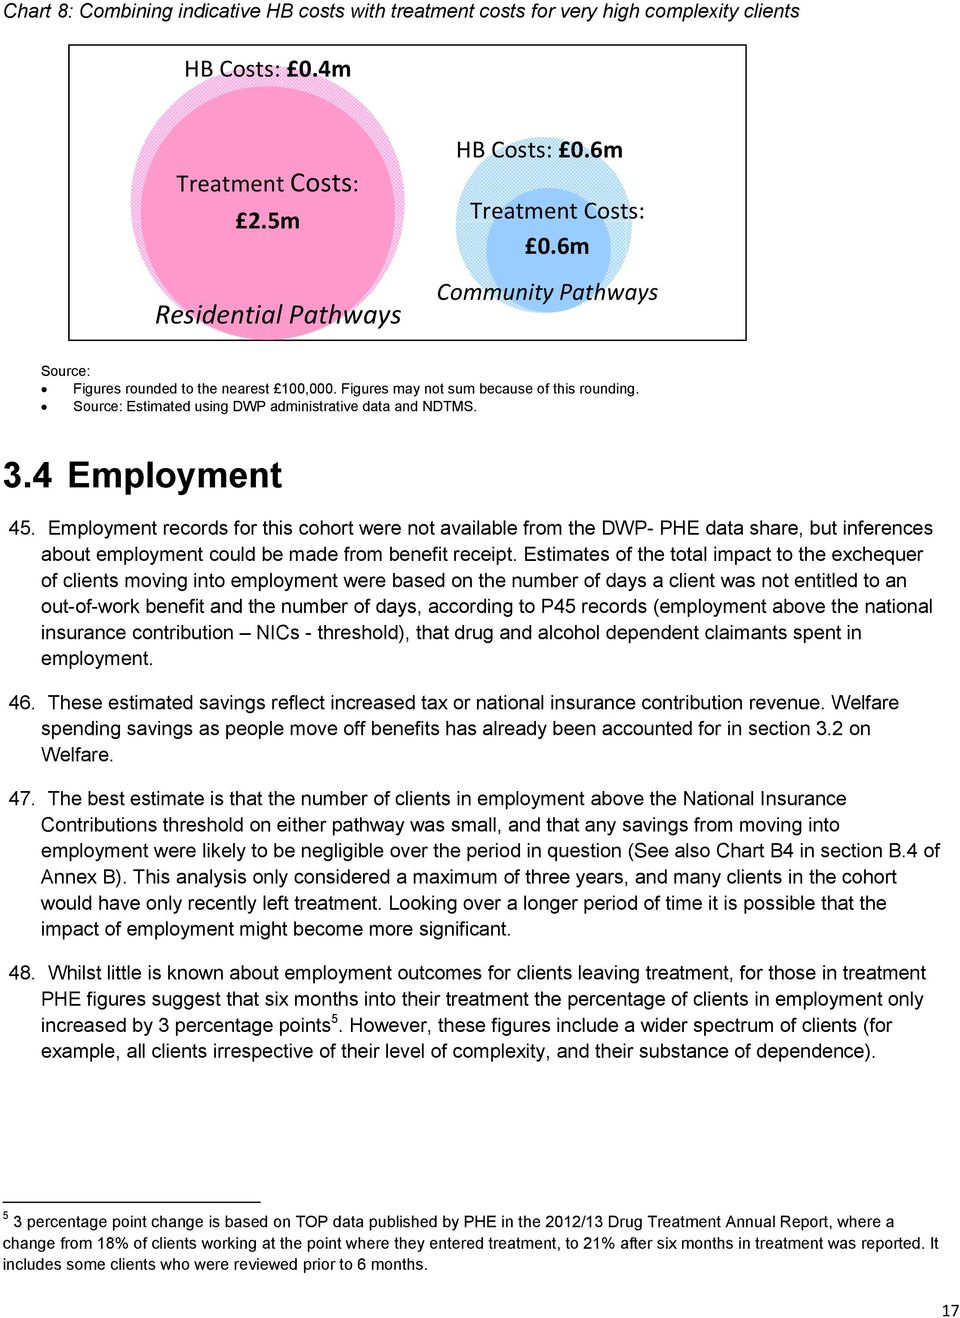 Employment records for this cohort were not available from the DWP- PHE data share, but inferences about employment could be made from benefit receipt.